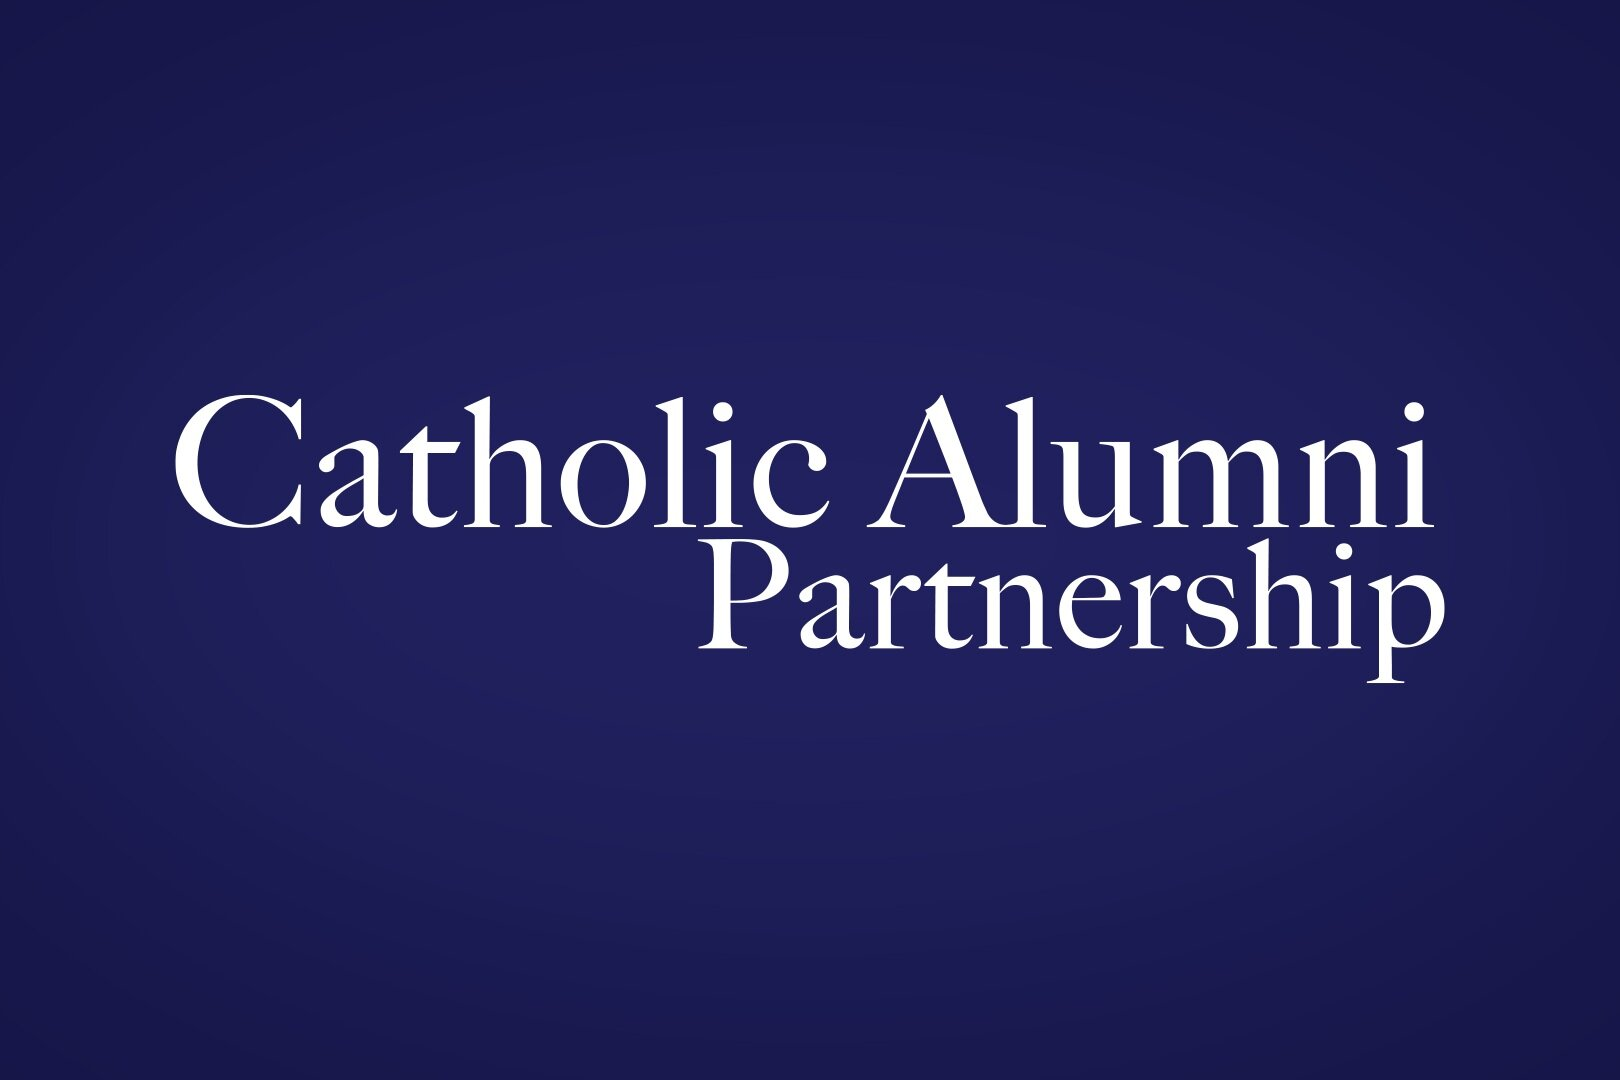 Microsite - As a team effort, I led the creative direction for this nonprofit microsite for the advancement of Catholic educational institutions.